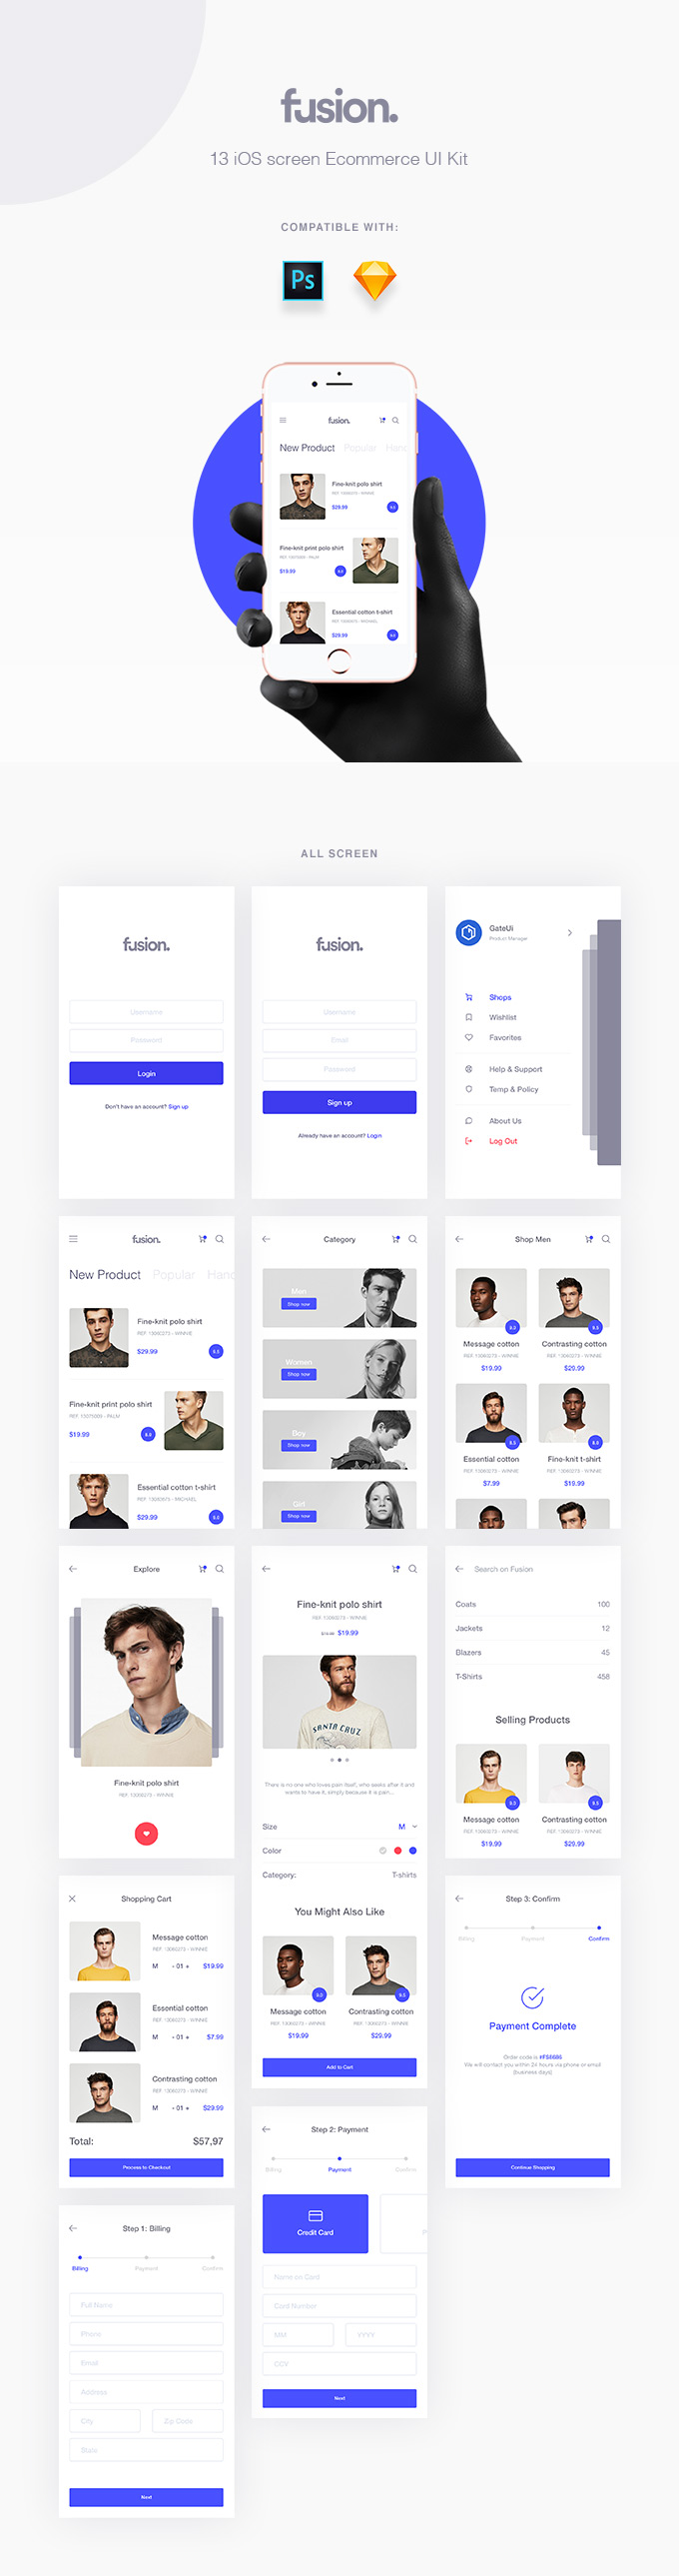 Fusion eCommerce UI Kit - Get ready for something absolutely fresh for your E-commerce app